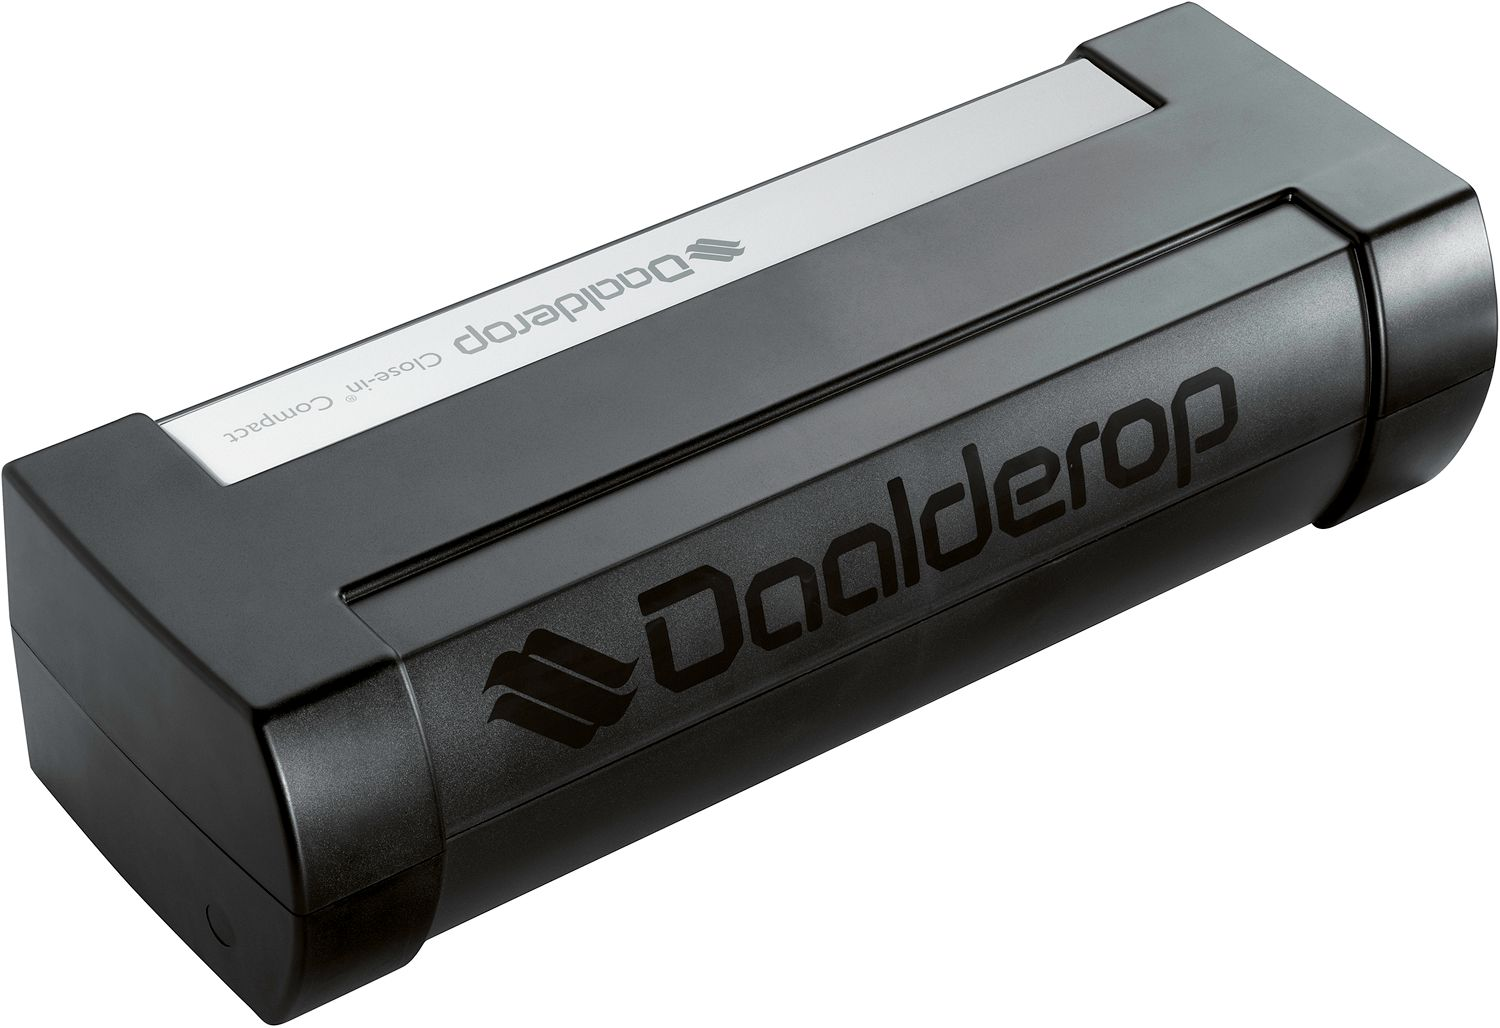 CLOSE-IN COMPACT DAALDEROP 5L 1500 WATT